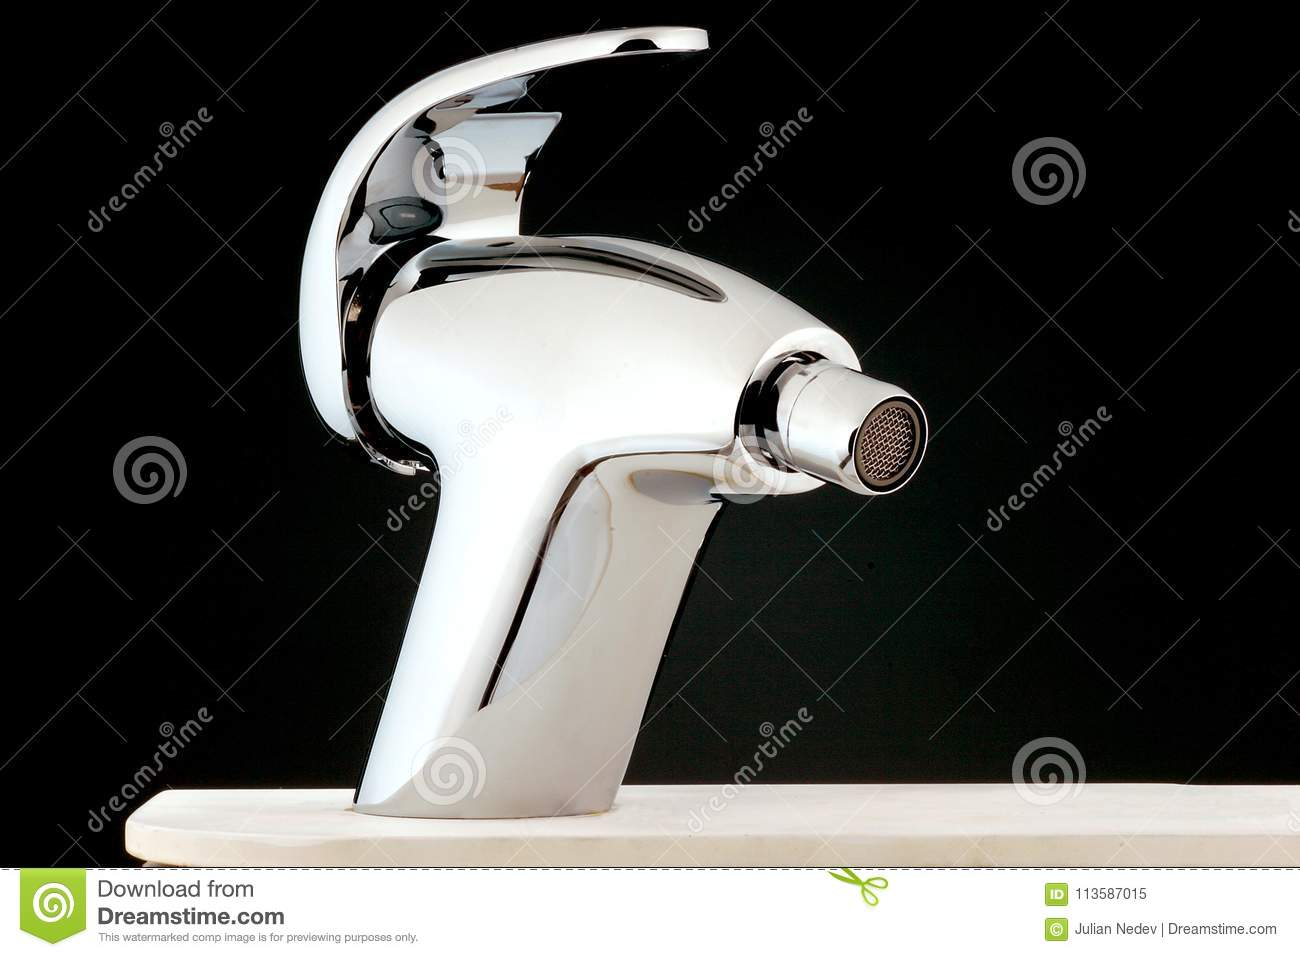 Modern Water-supply Faucet Mixer For Water Stock Image - Image of ...